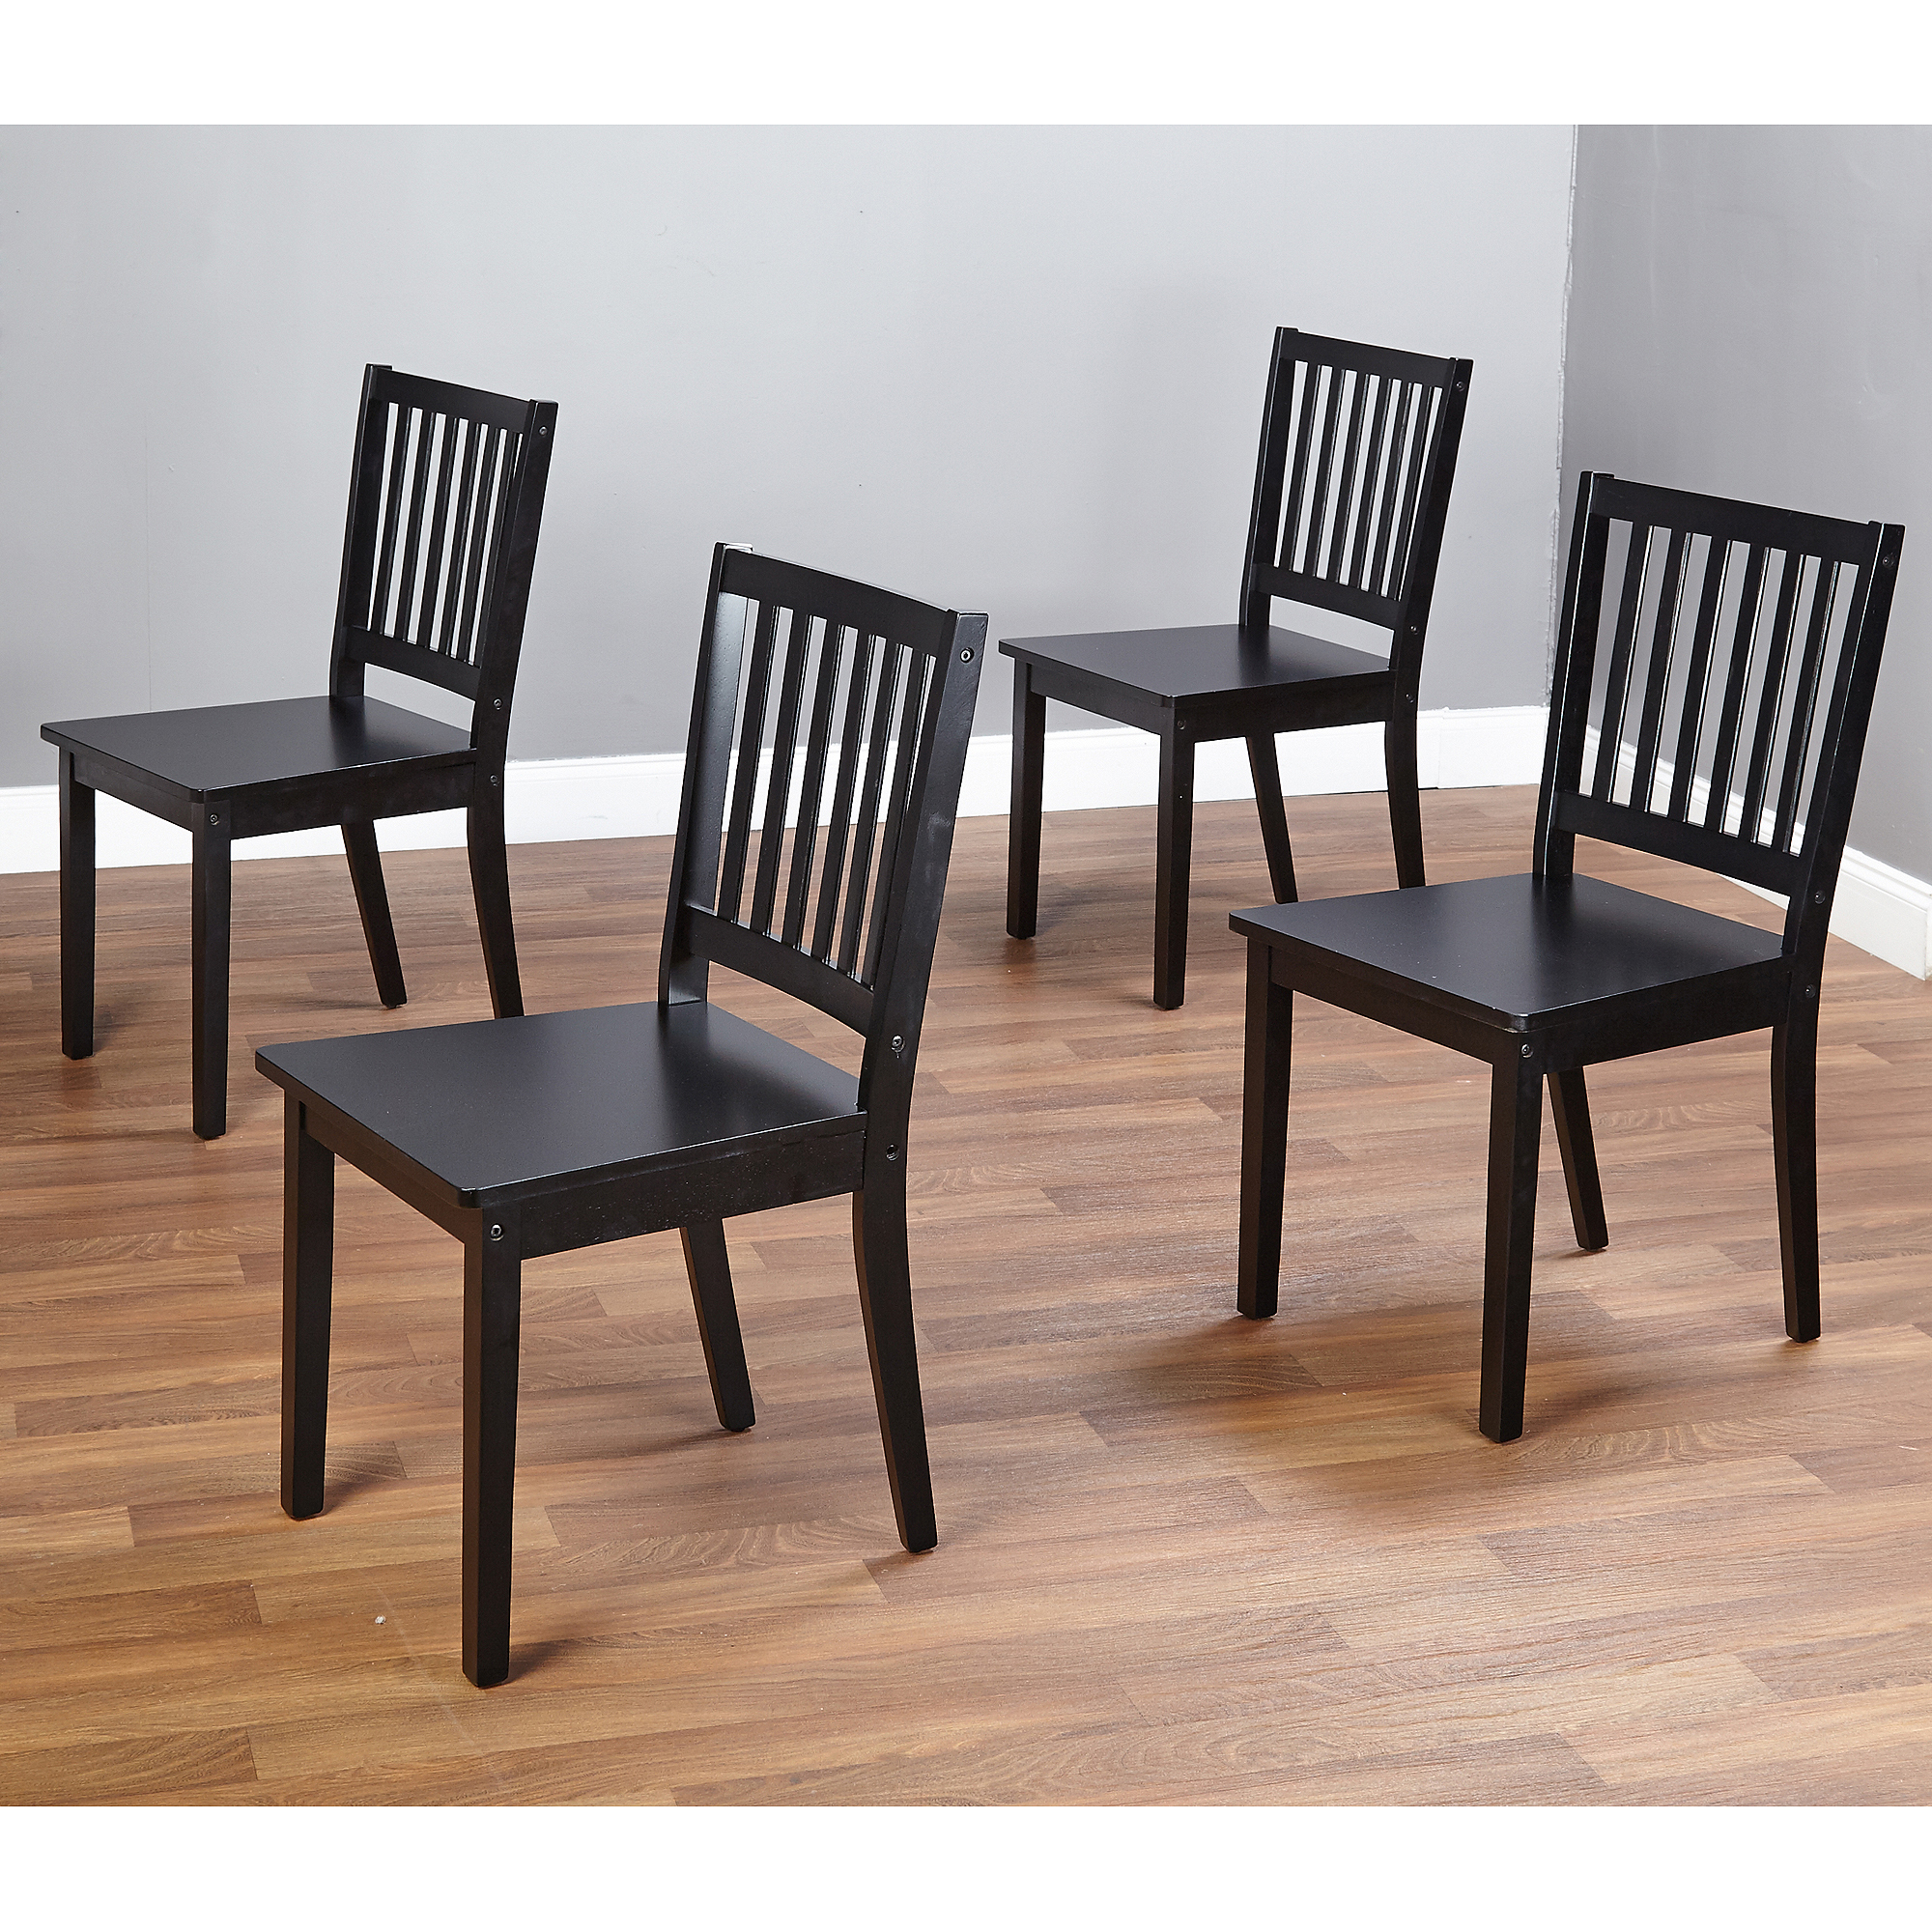 shaker dining chairs, set of 4, espresso - walmart.com JFSPPUZ